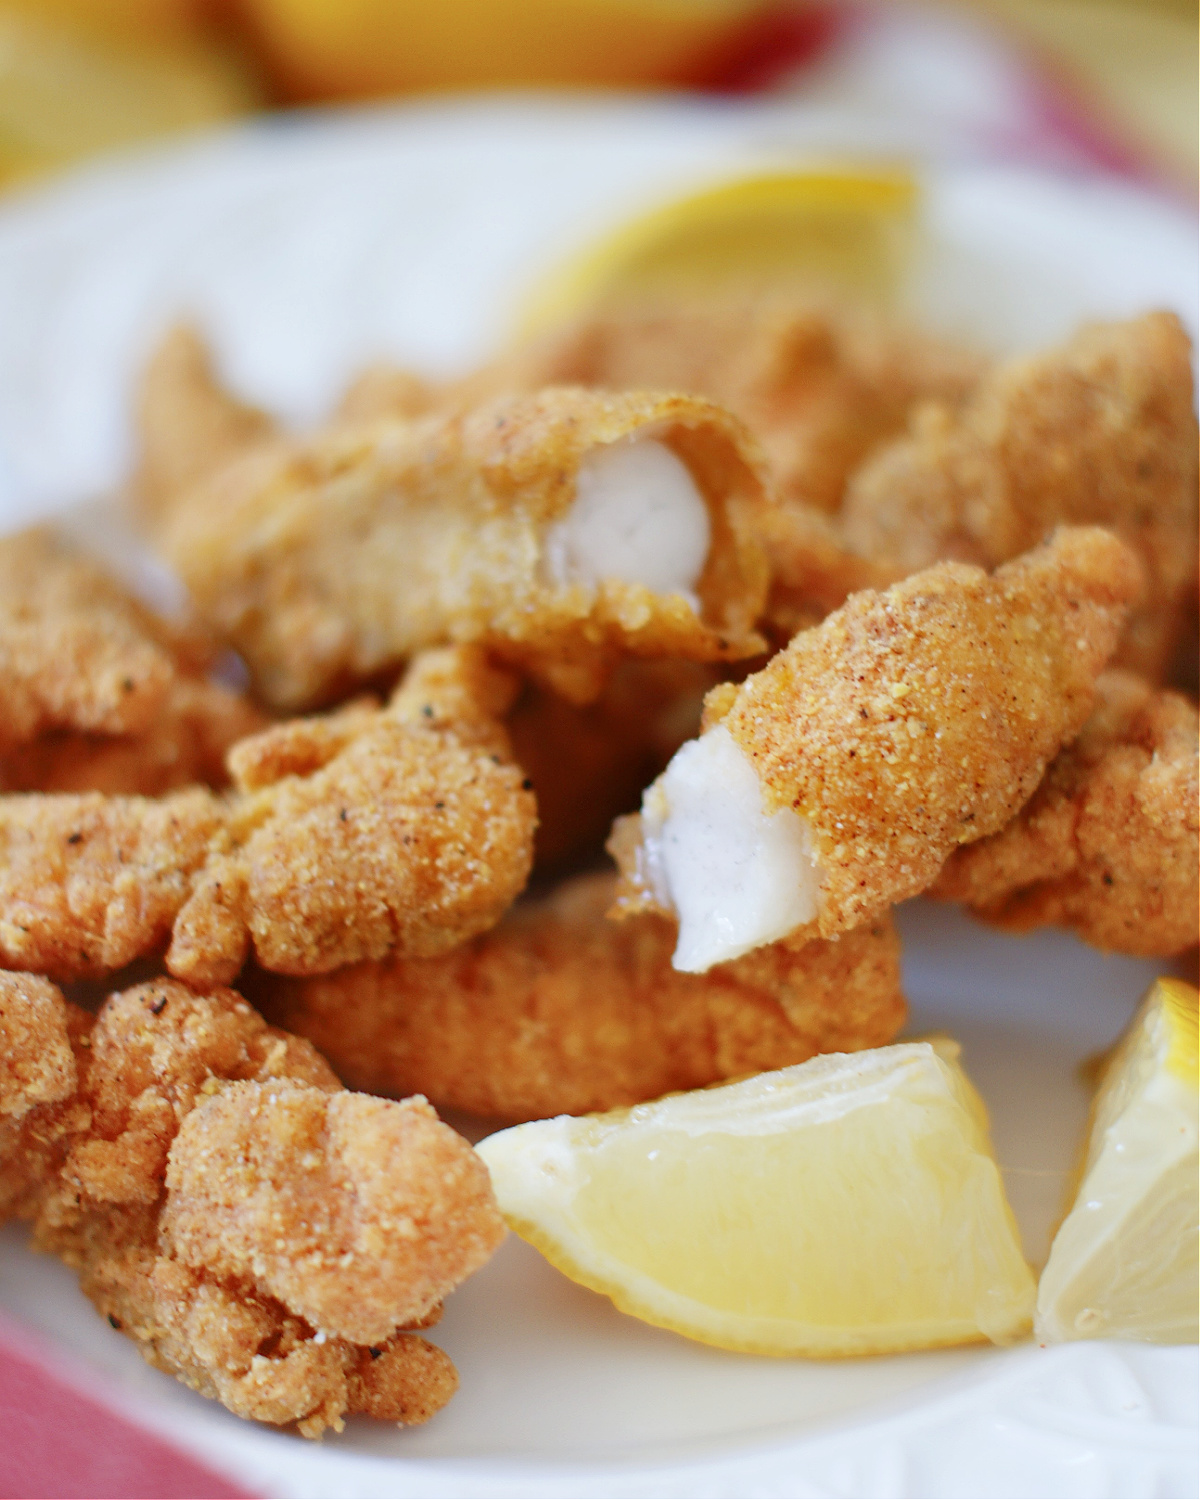 tender, flaky fish with crunchy cornmeal coating